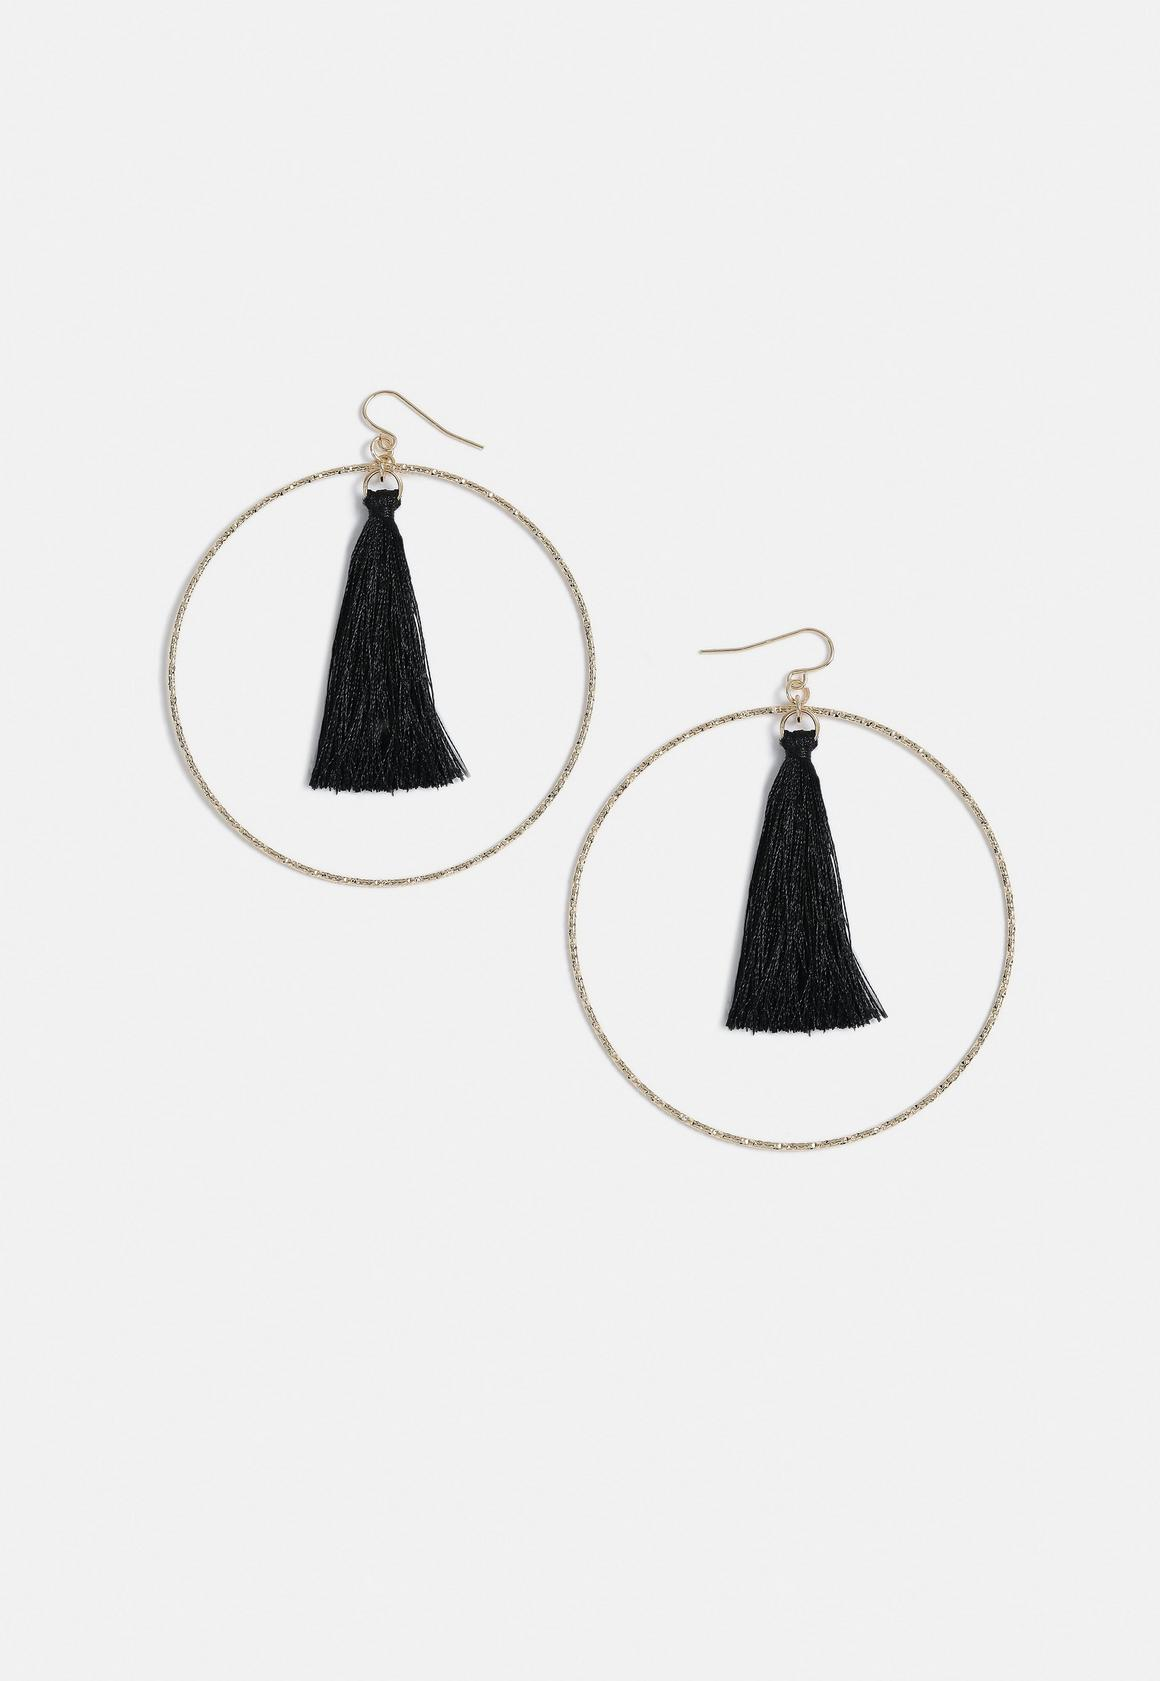 Missguided Black Tassel Gold Hoops- $12